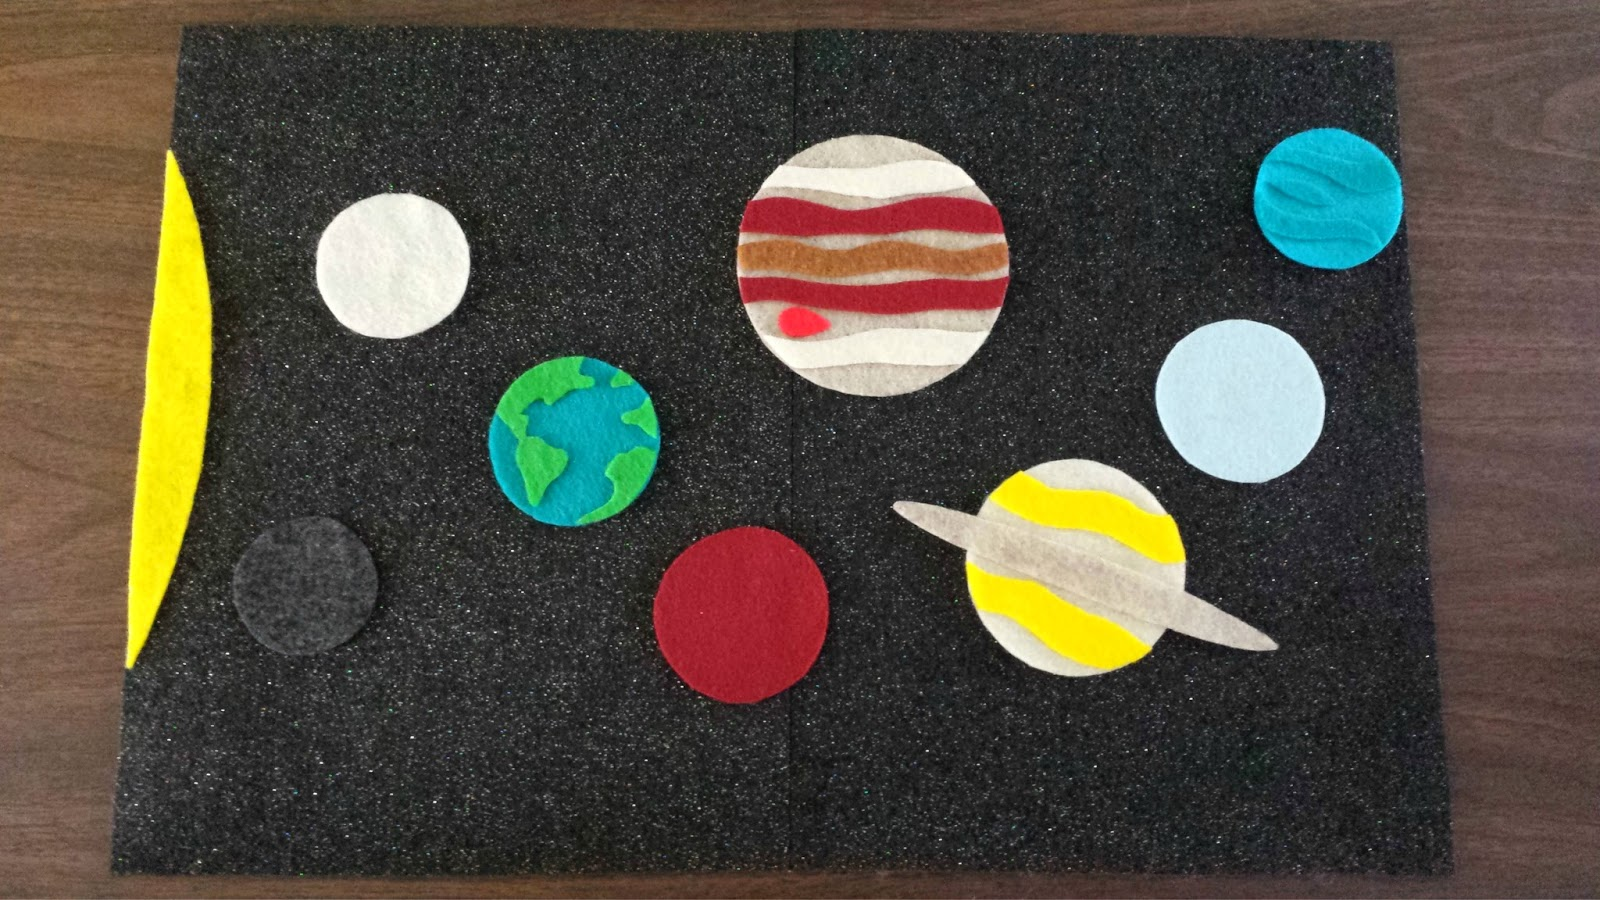 how big is our planet essay Get an answer for 'steps to conserve our earthi have an essay contest, so please answers my question' and find homework help for other essay lab questions at enotes.